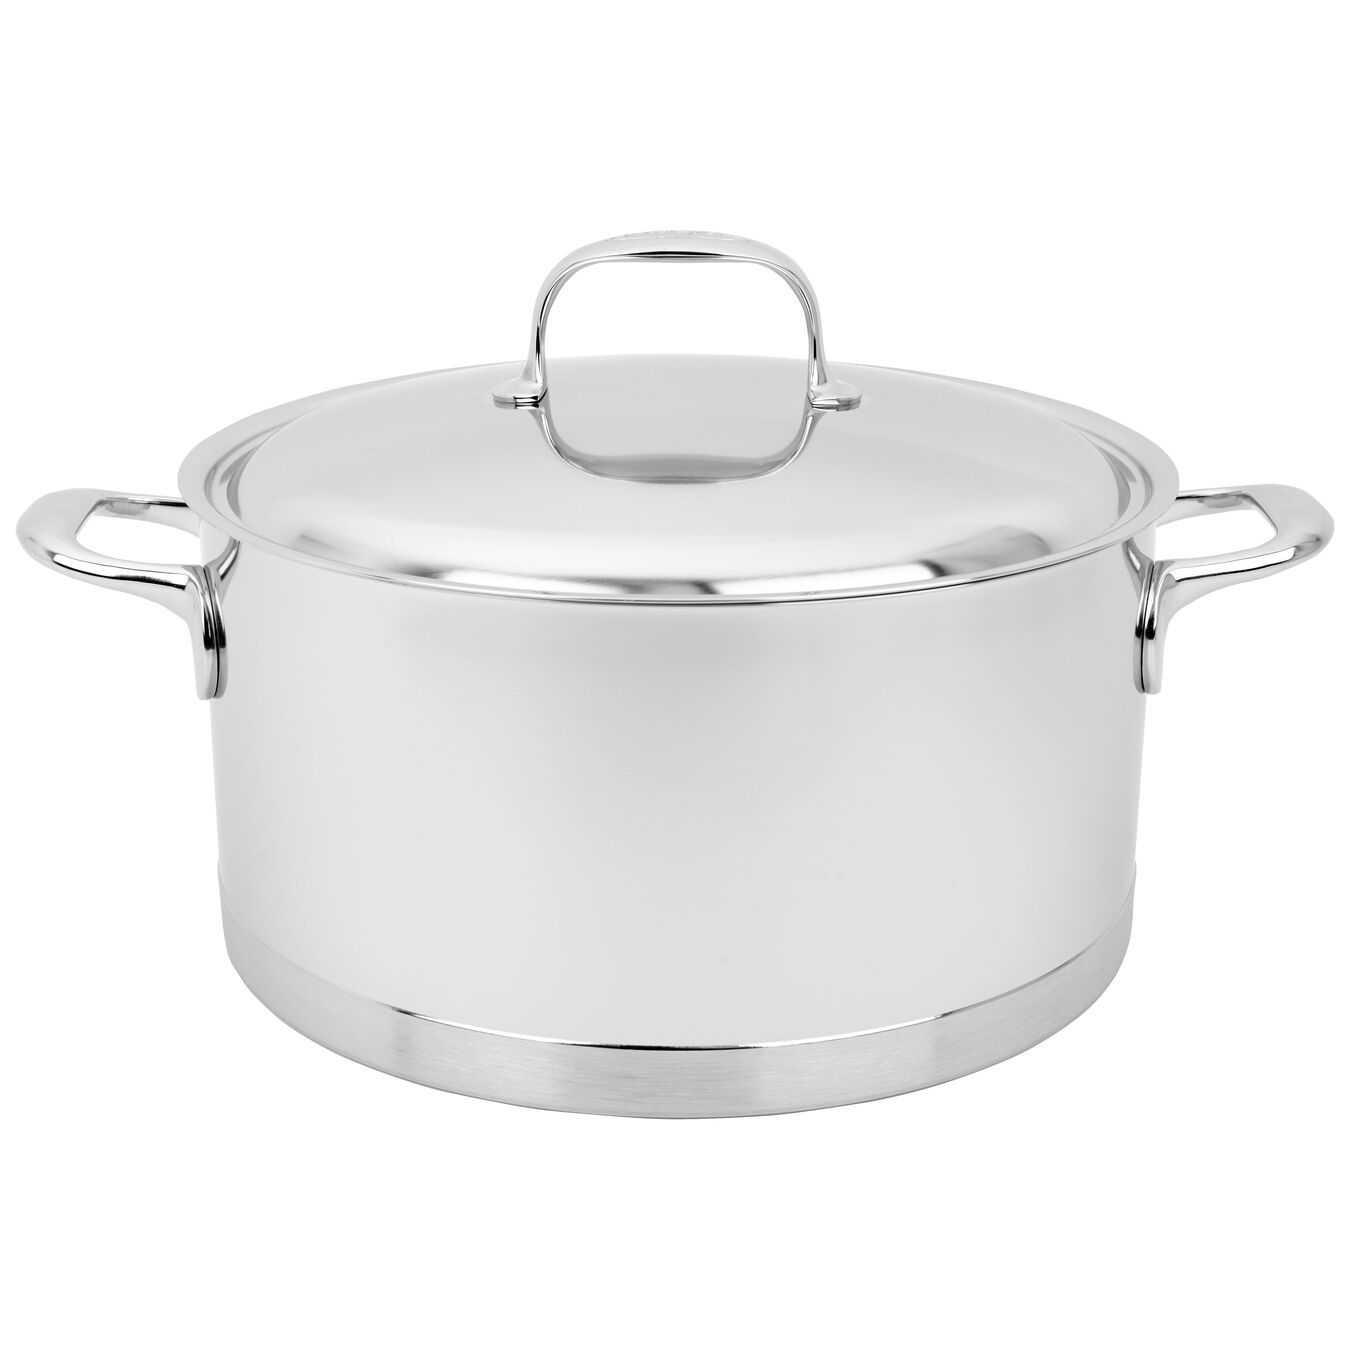 8,5 l 18/10 Stainless Steel Casserole with lid,,large 1